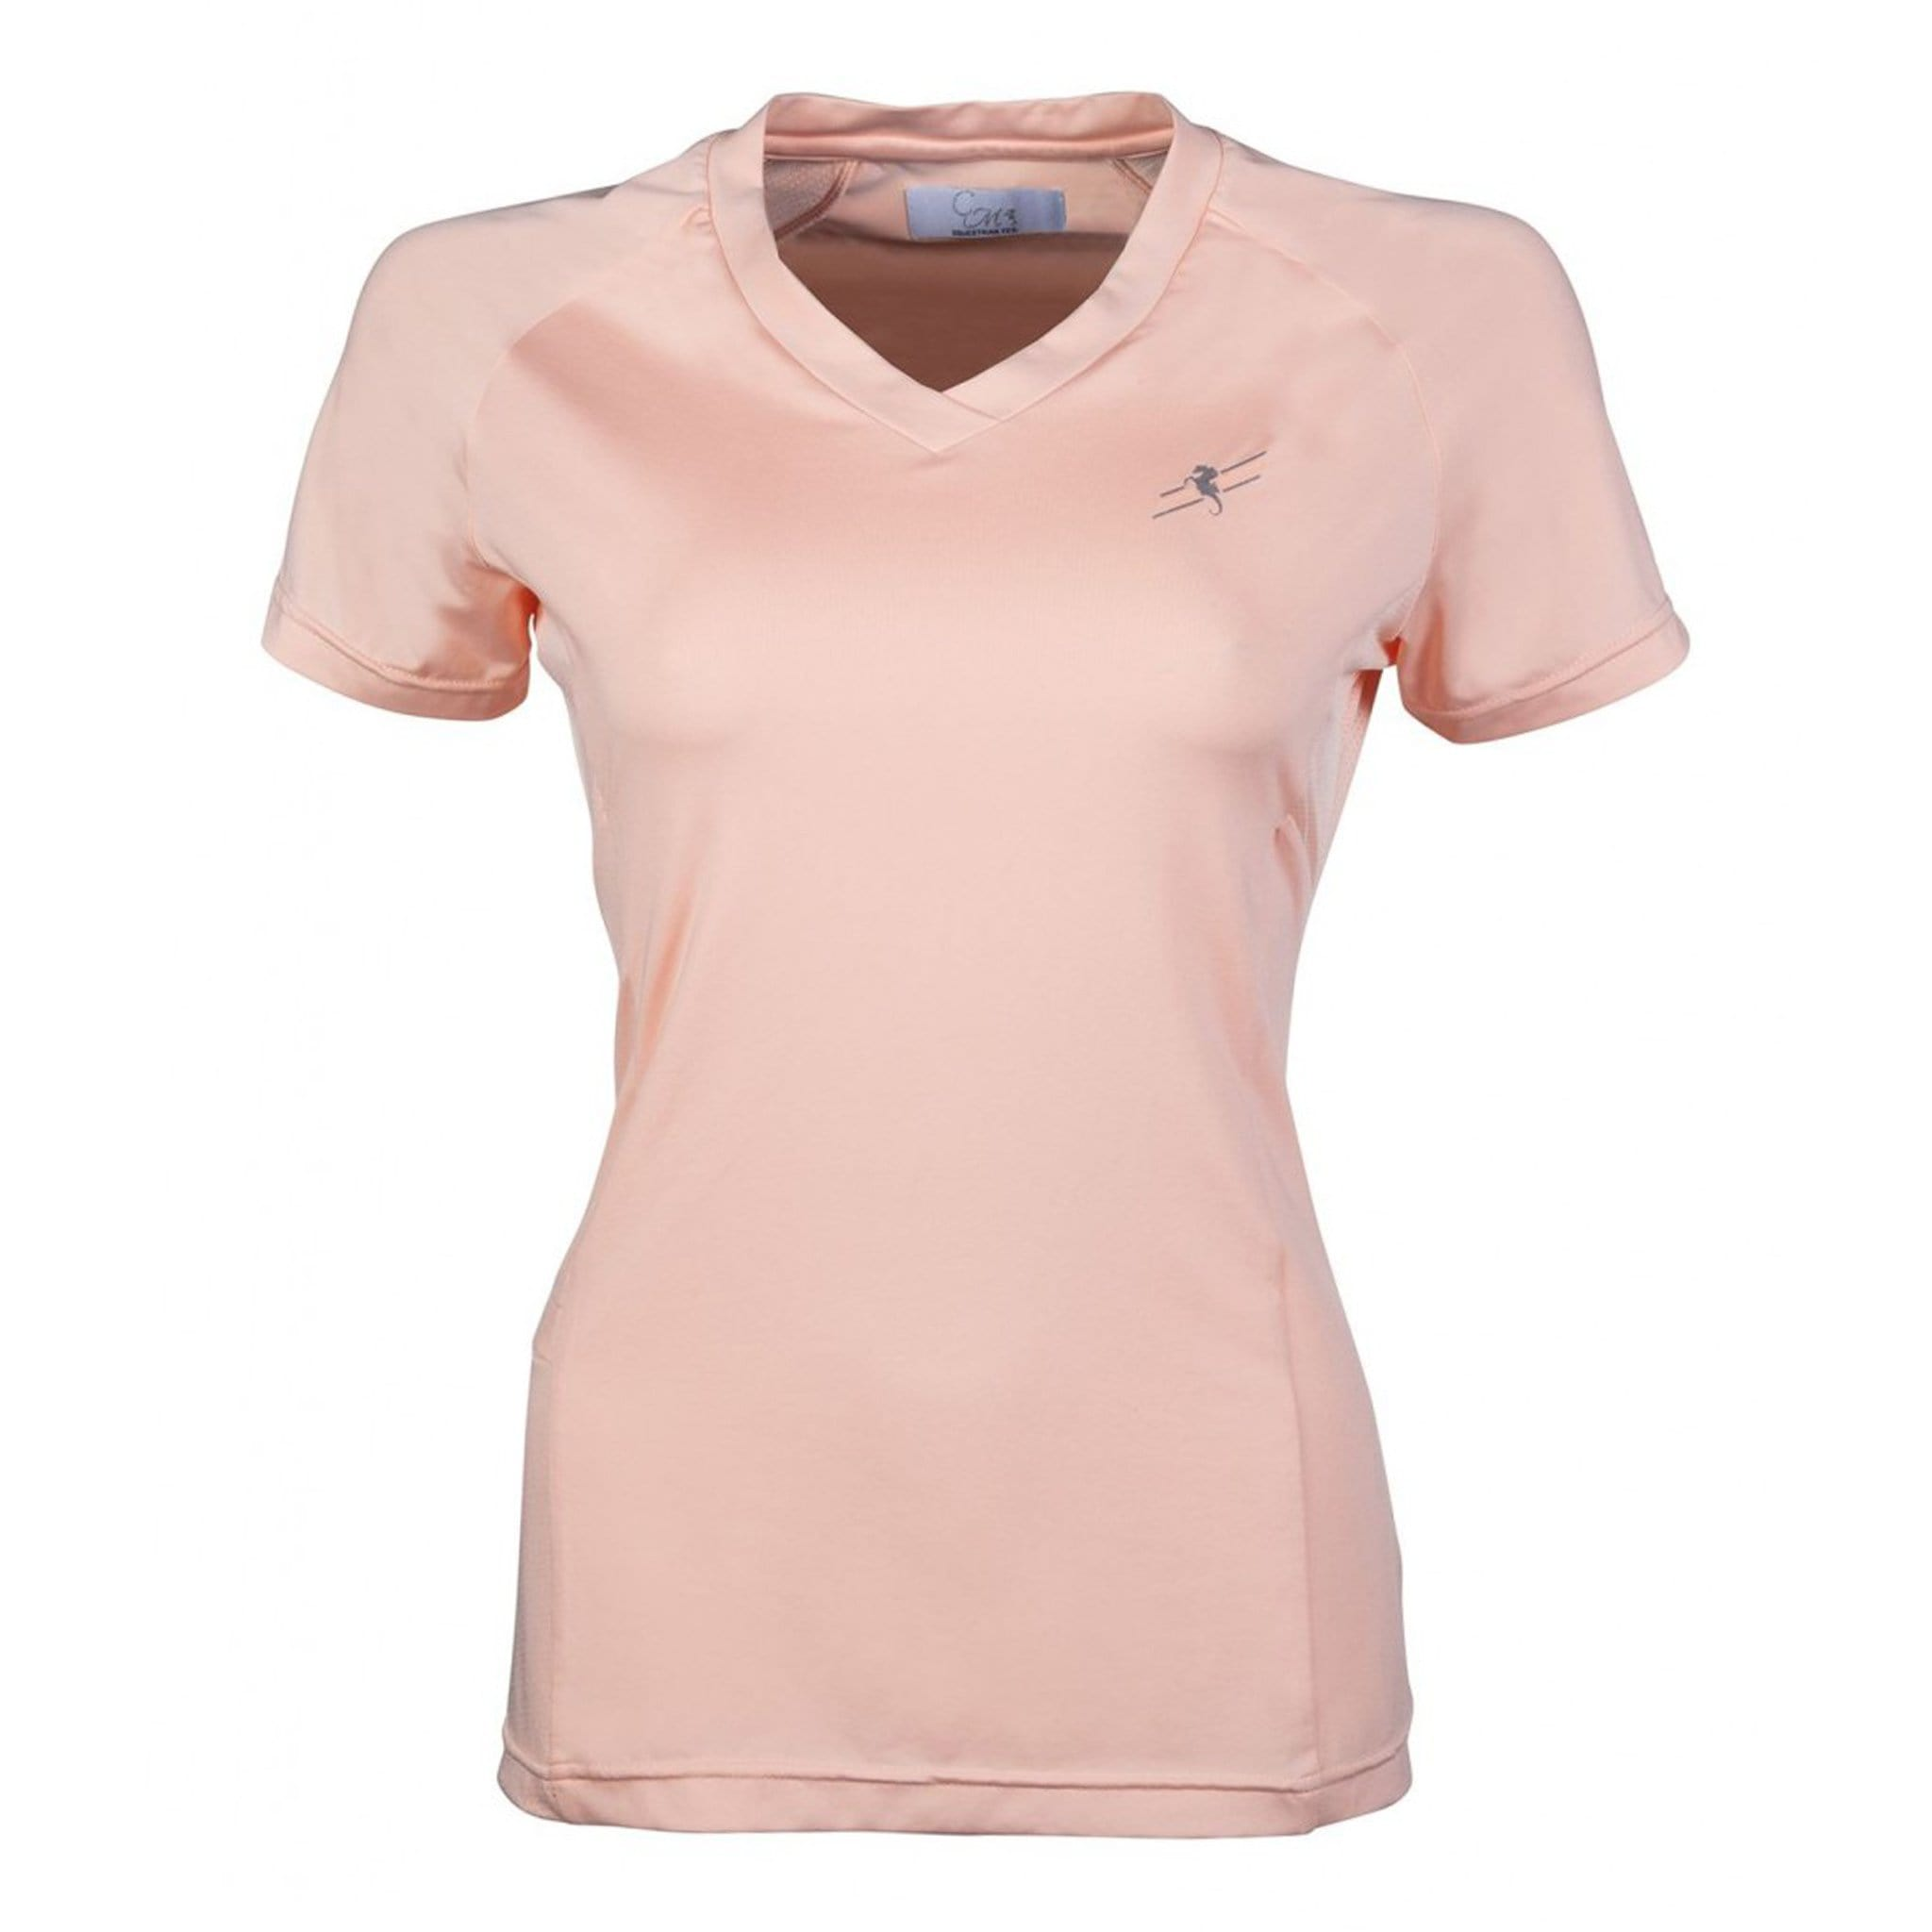 HKM Mondiale Short Sleeve T-Shirt 11320 Apricot Front